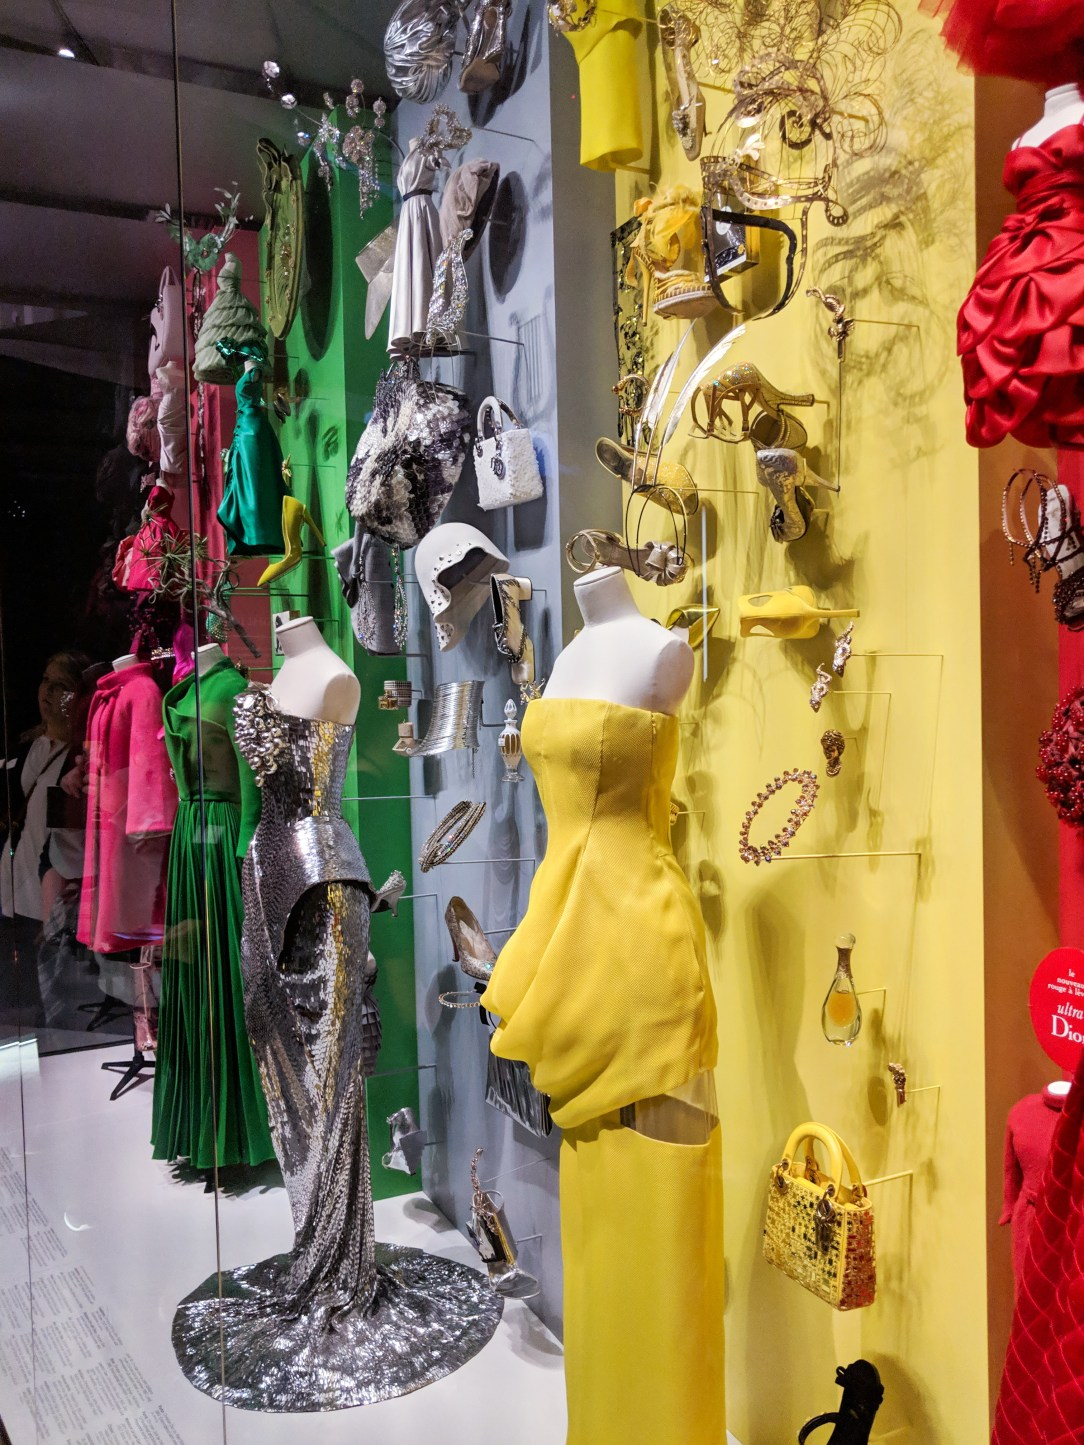 Dior color and accessory wall